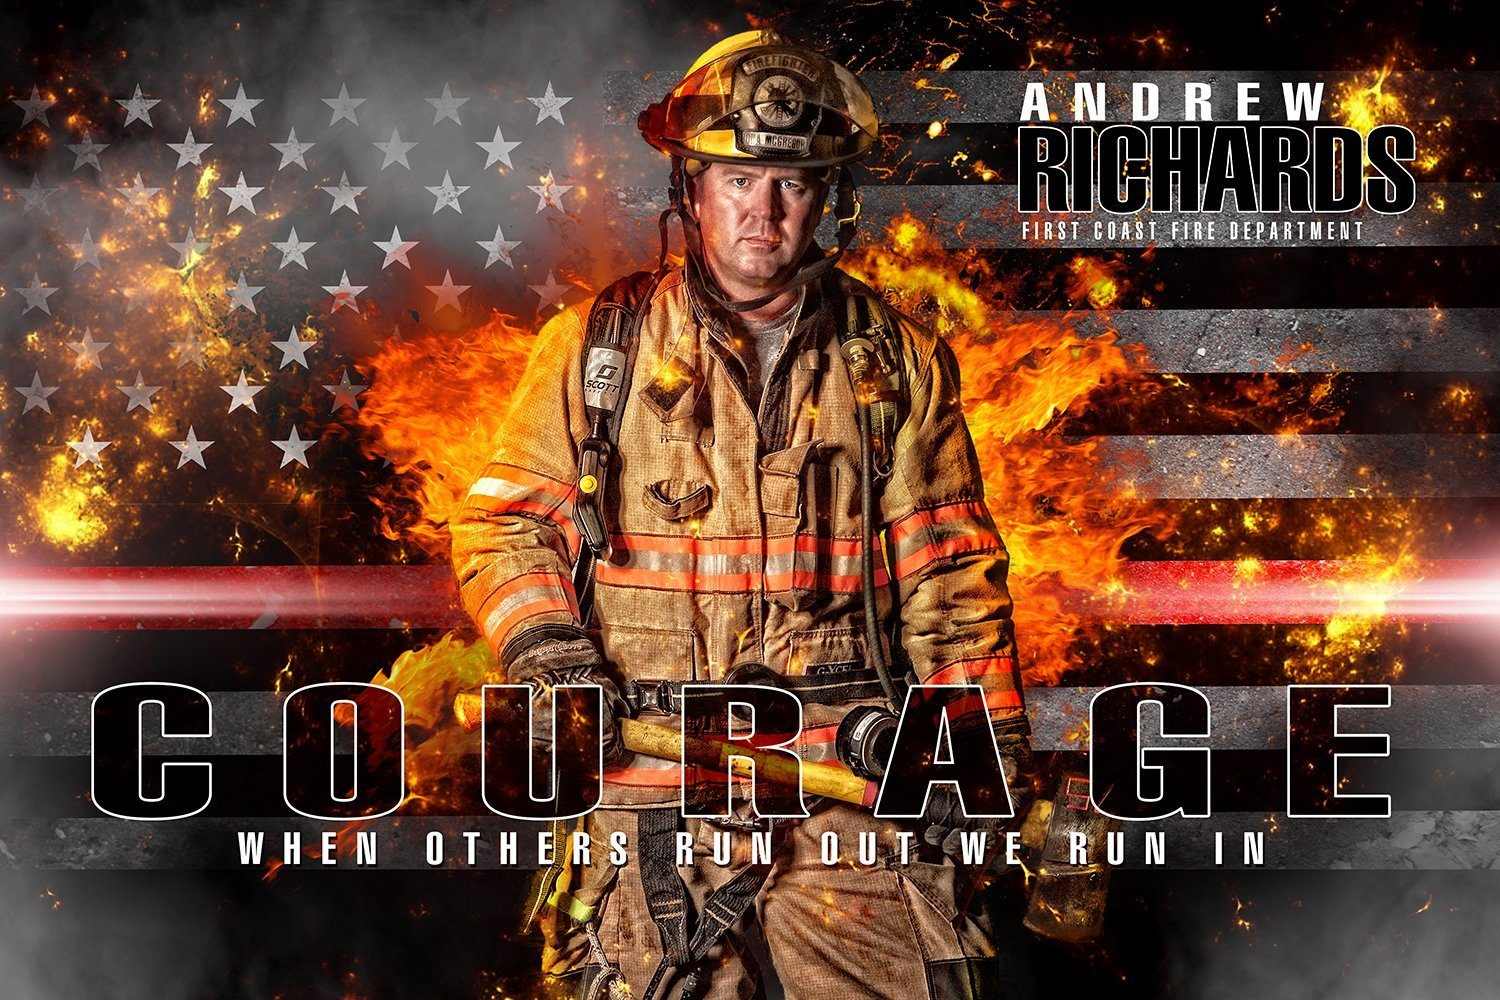 Fireman - V.2 - Heroes Series - Poster/Banner H-Photoshop Template - Photo Solutions